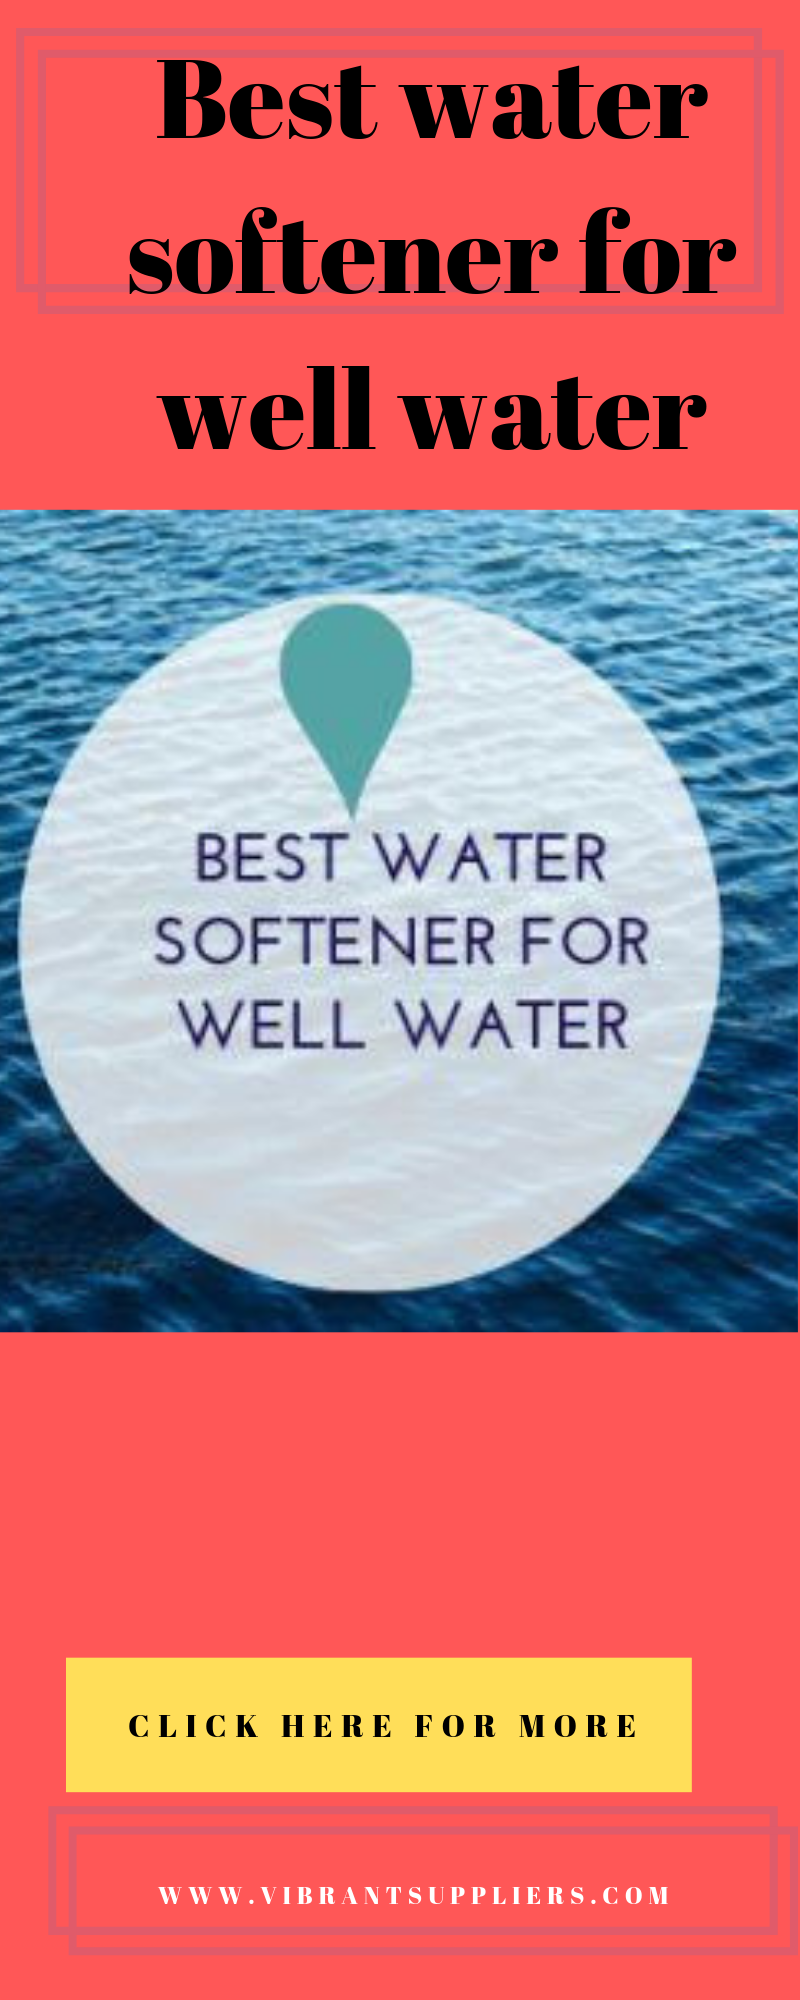 Best Water Softener For Well Water Reviews And Buyers Guide 2020 Water Softener Water Softener System Water Softener Salt